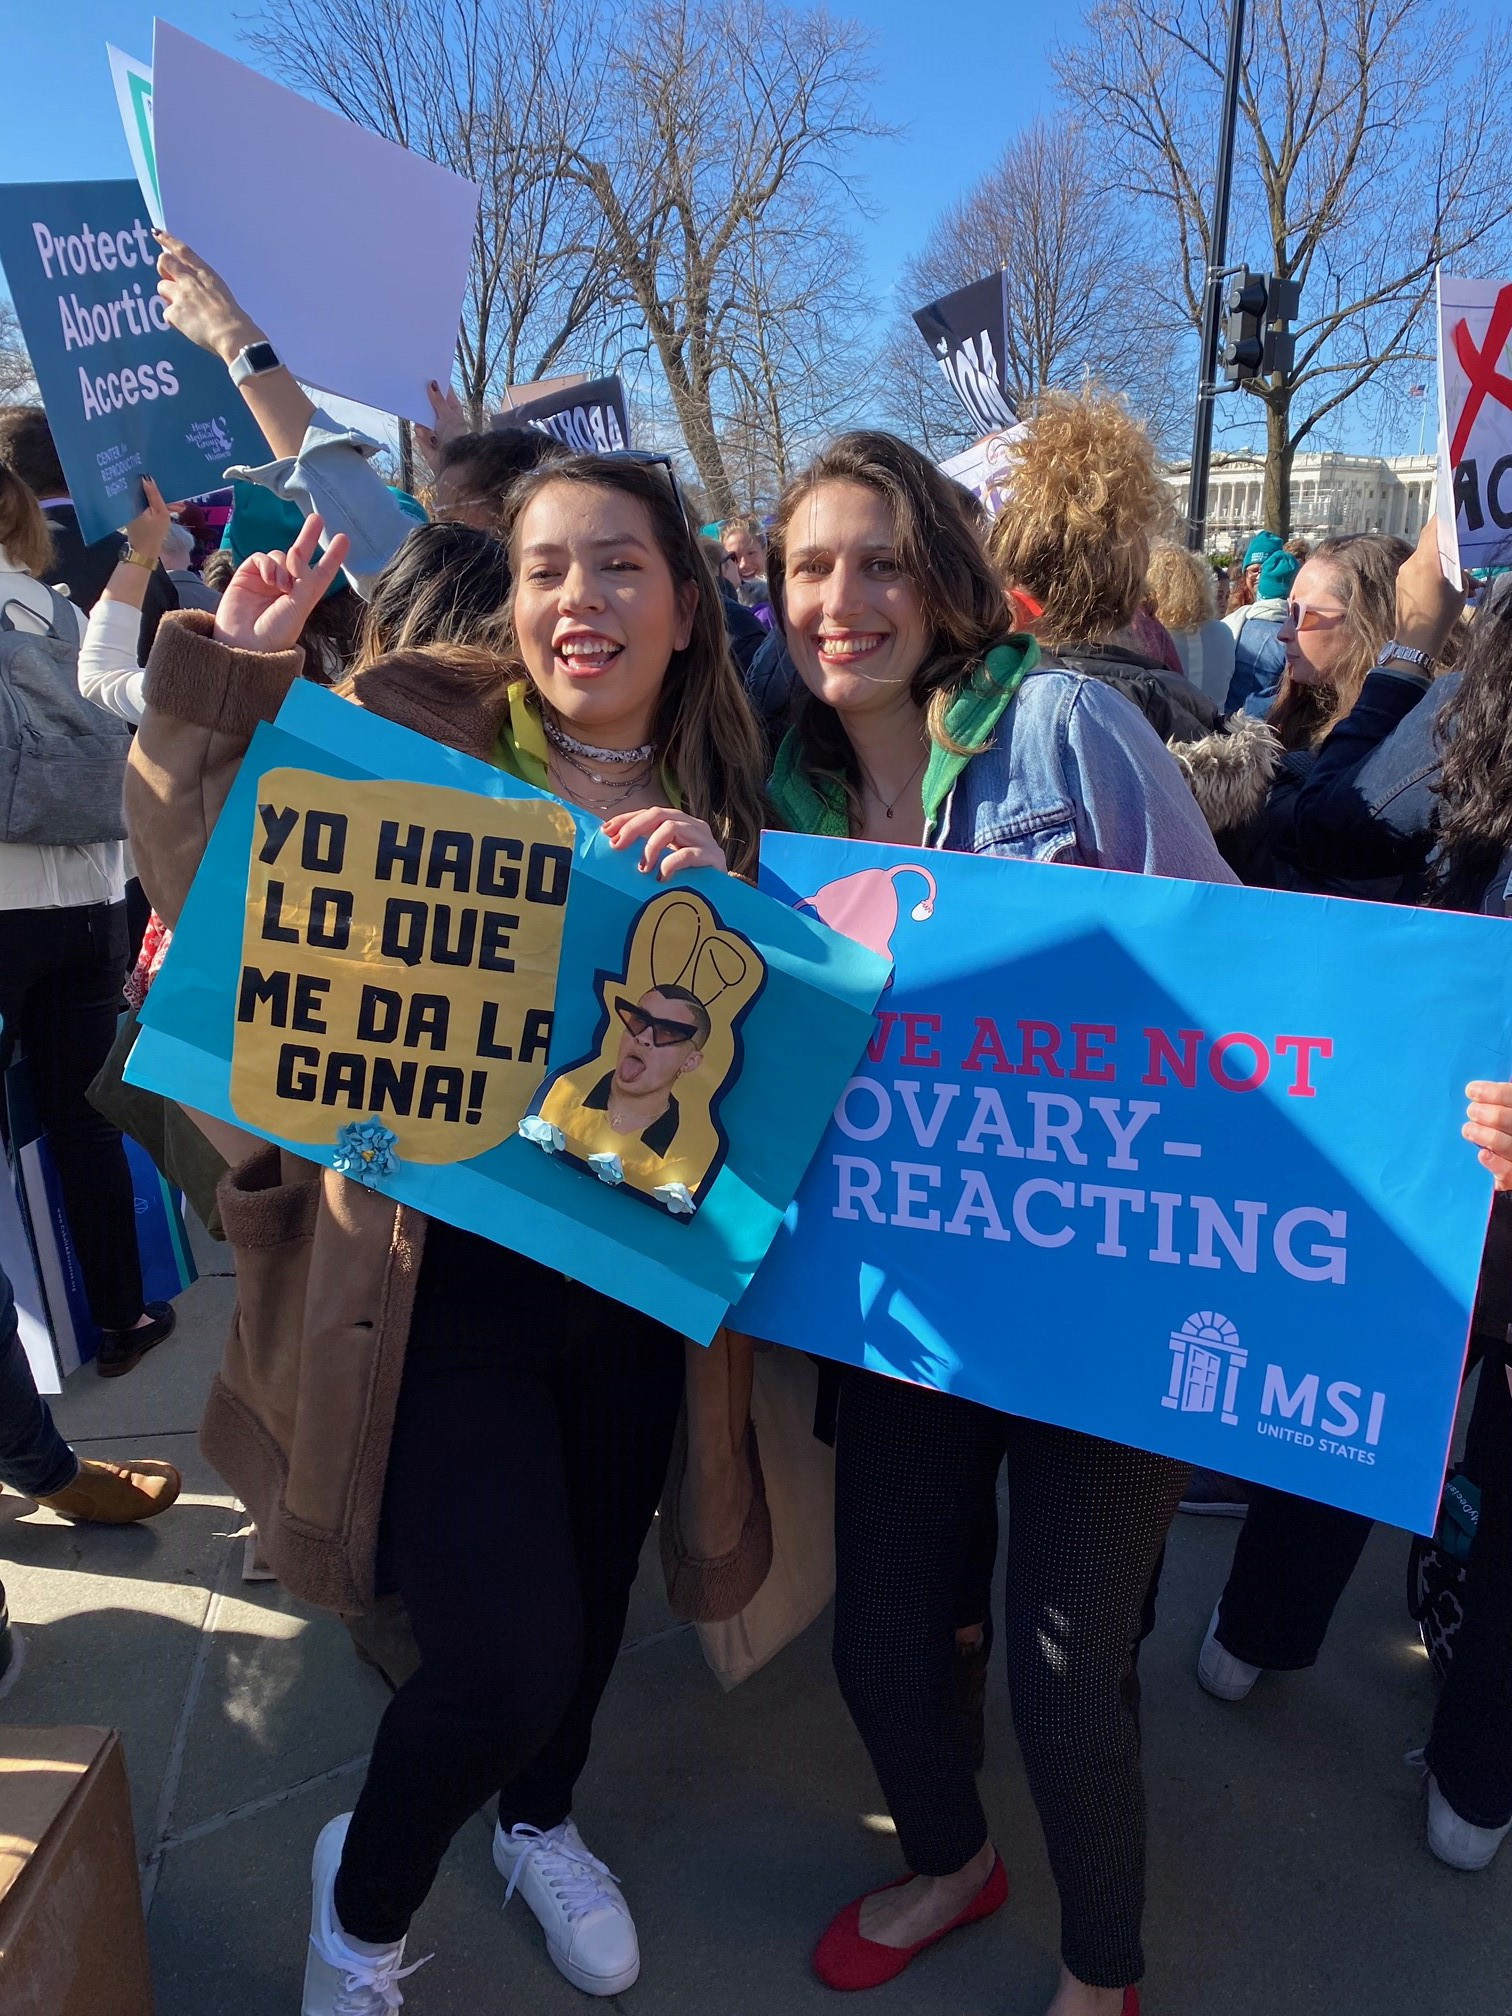 Two women holding pro-choice signs, one in Spanish and the other in English.